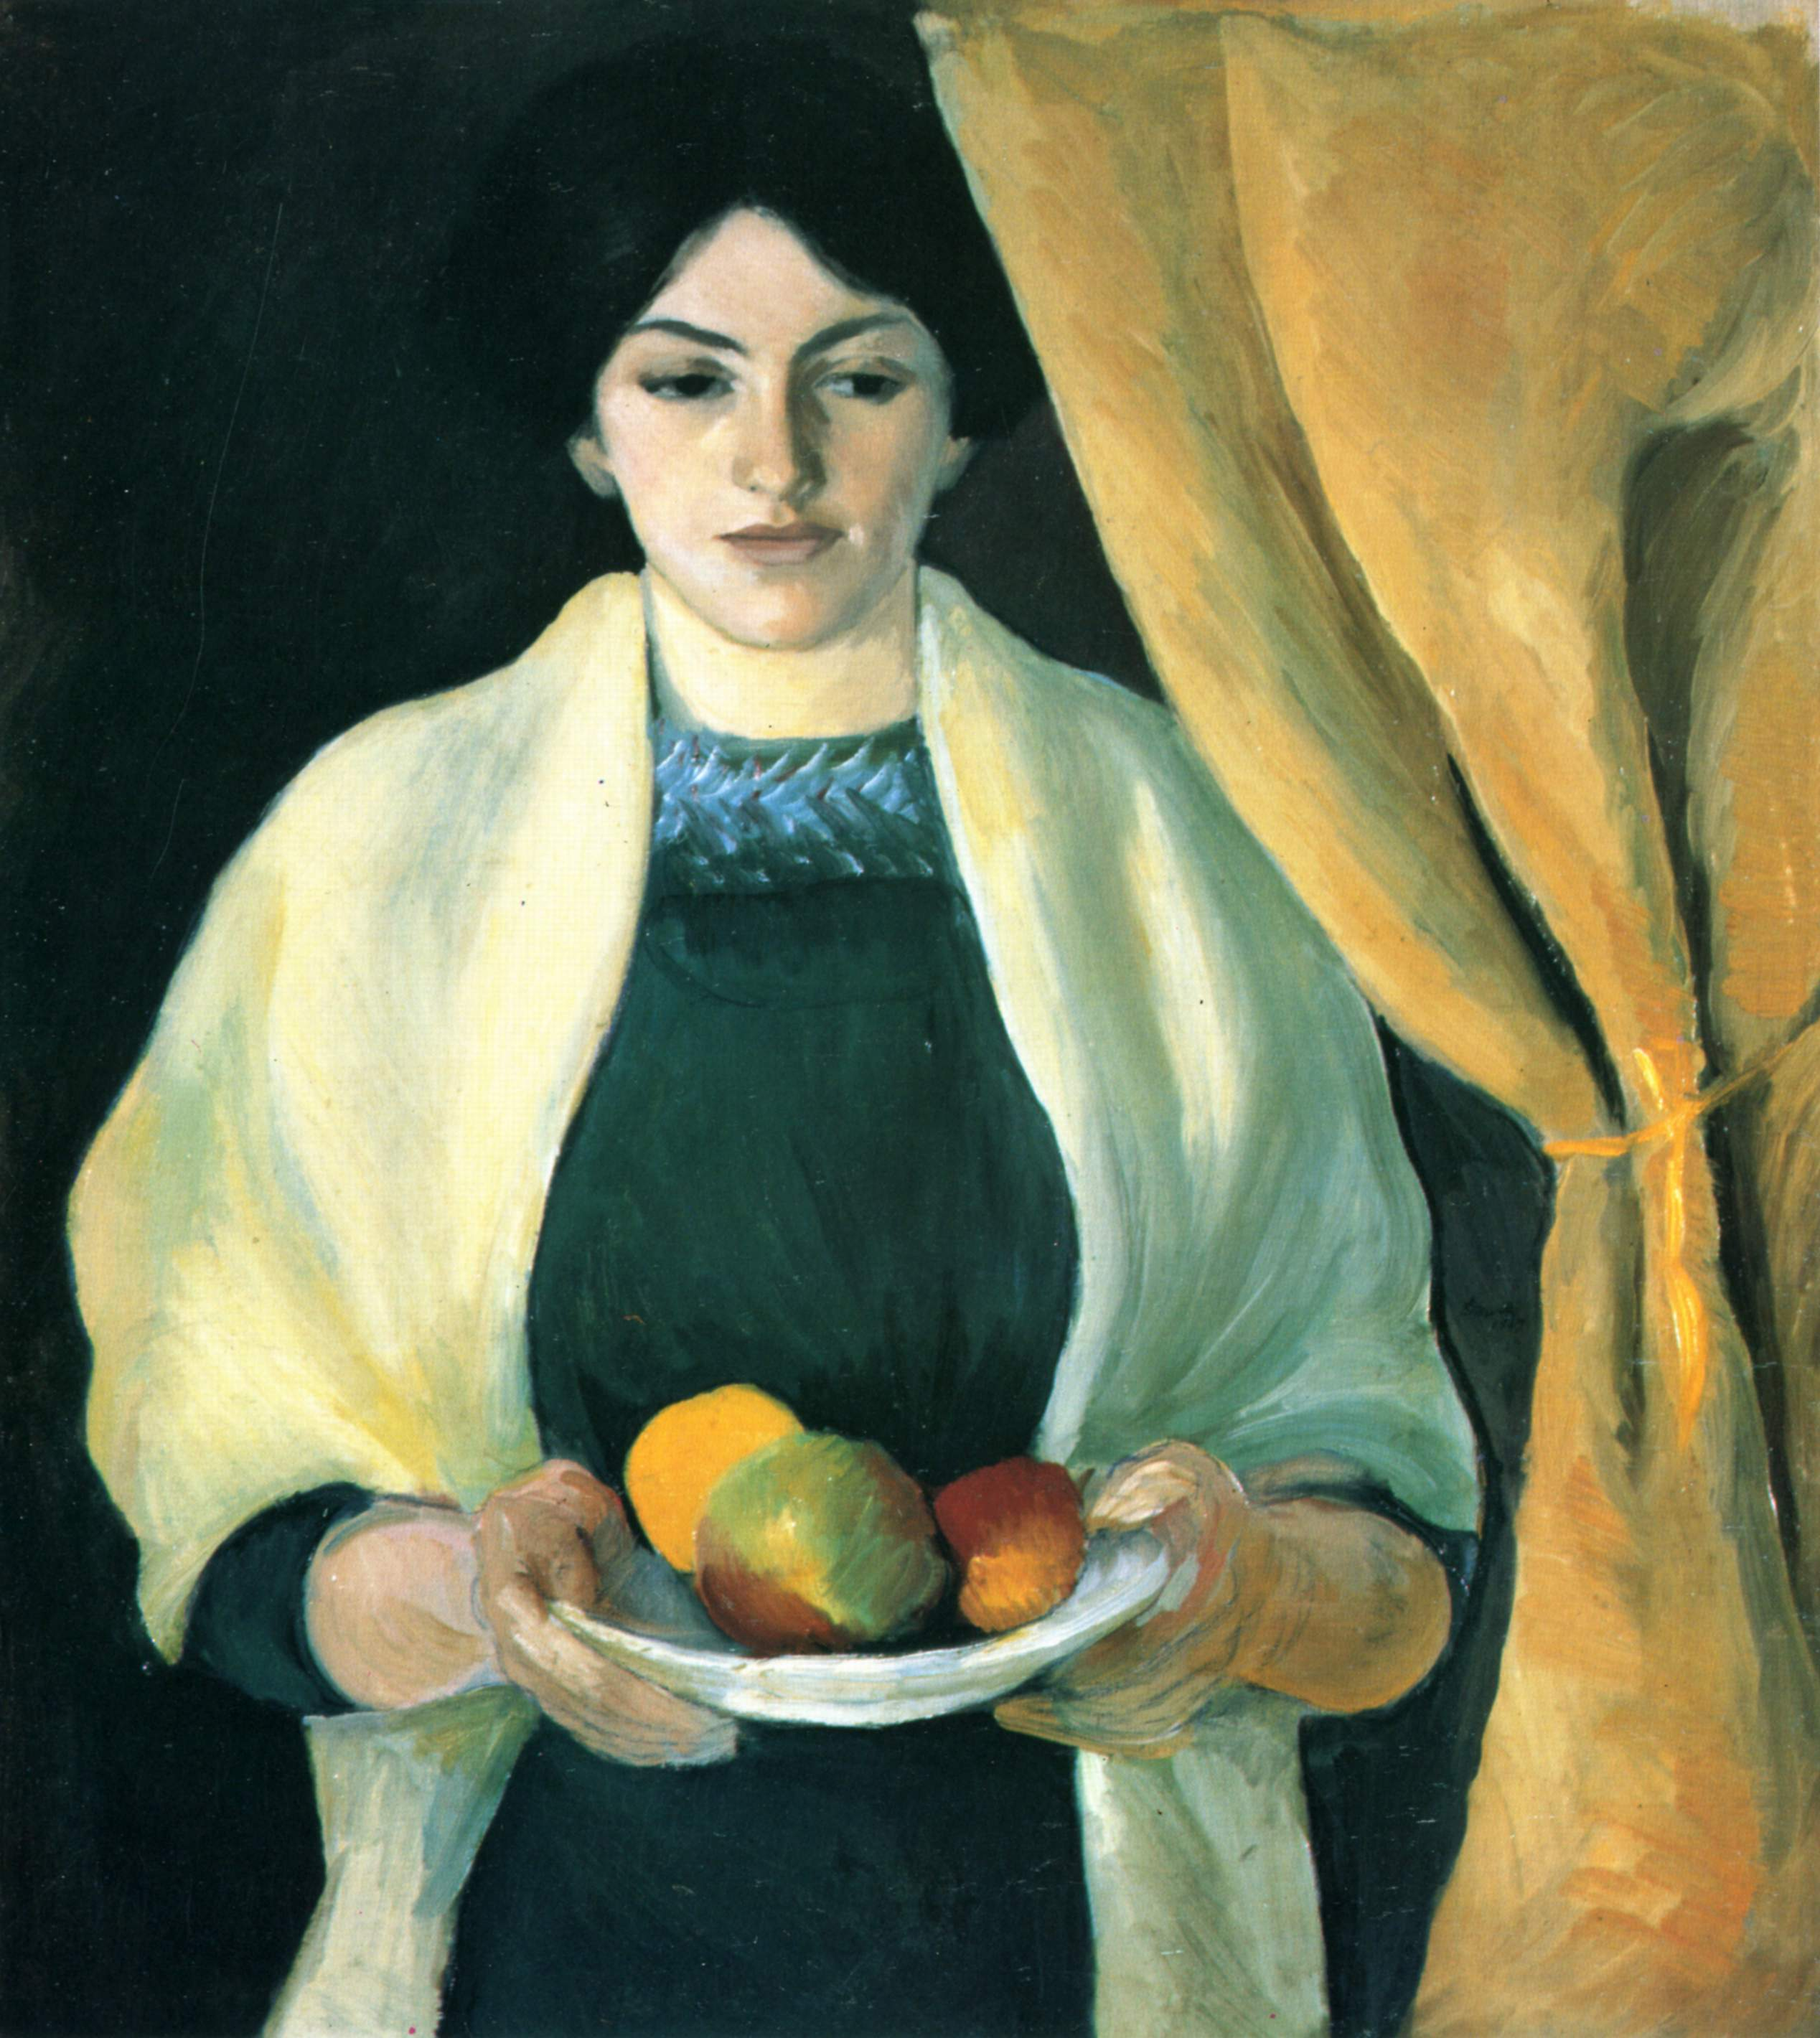 Cuadros De Picasso Wikipedia Portrait With Apples Portrait Of The Artist 39s Wife 1909